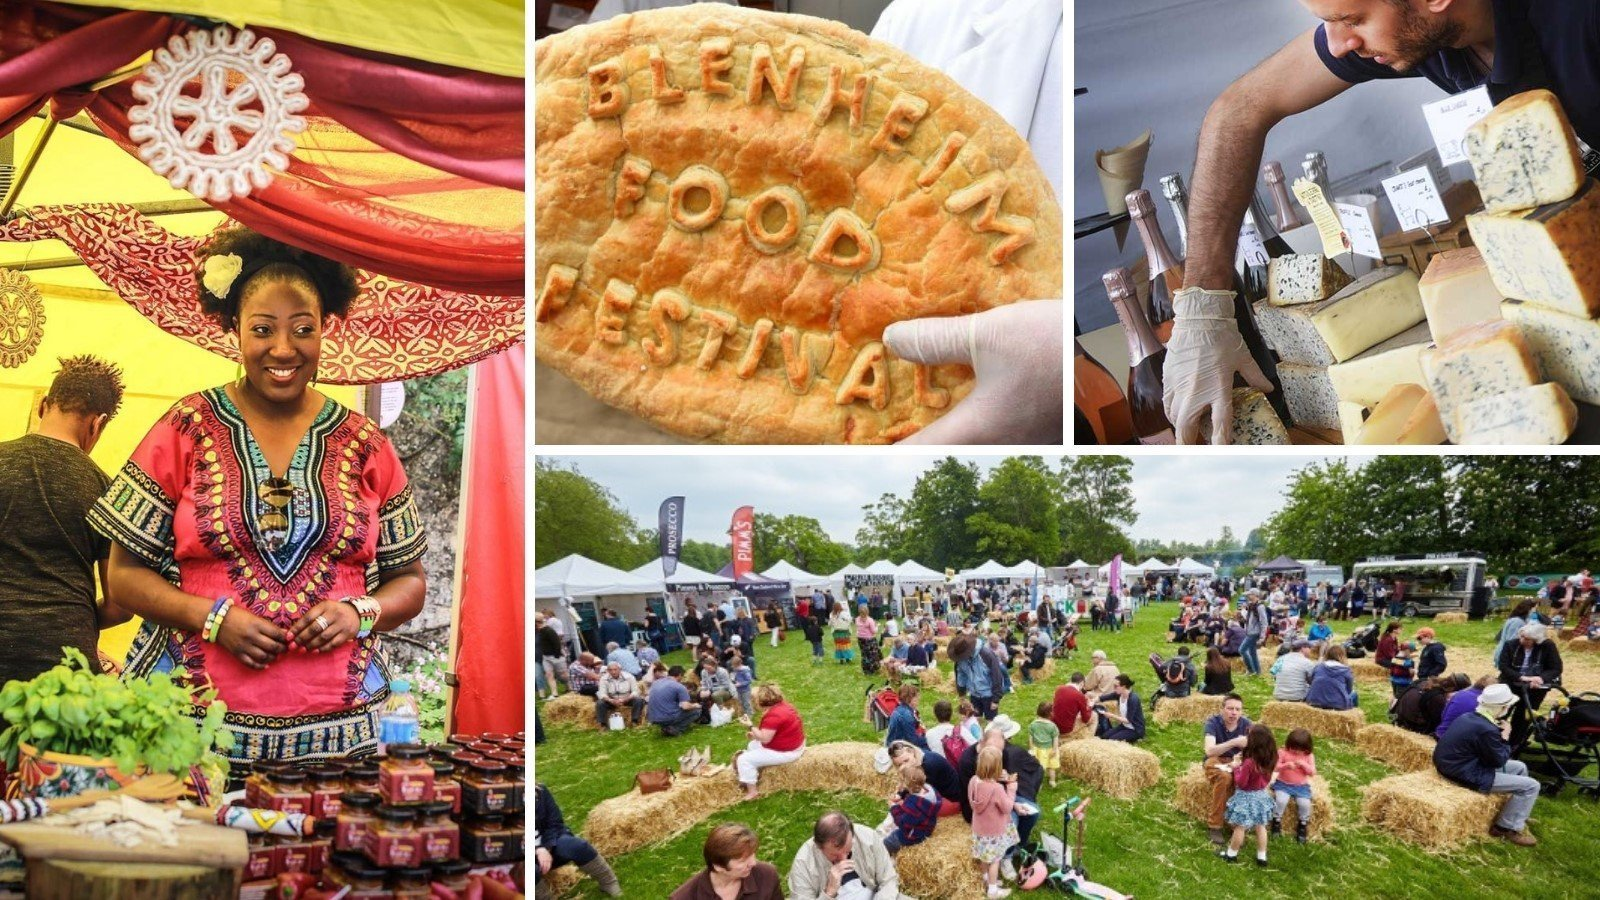 Blenheim Palace Food Festival 2019